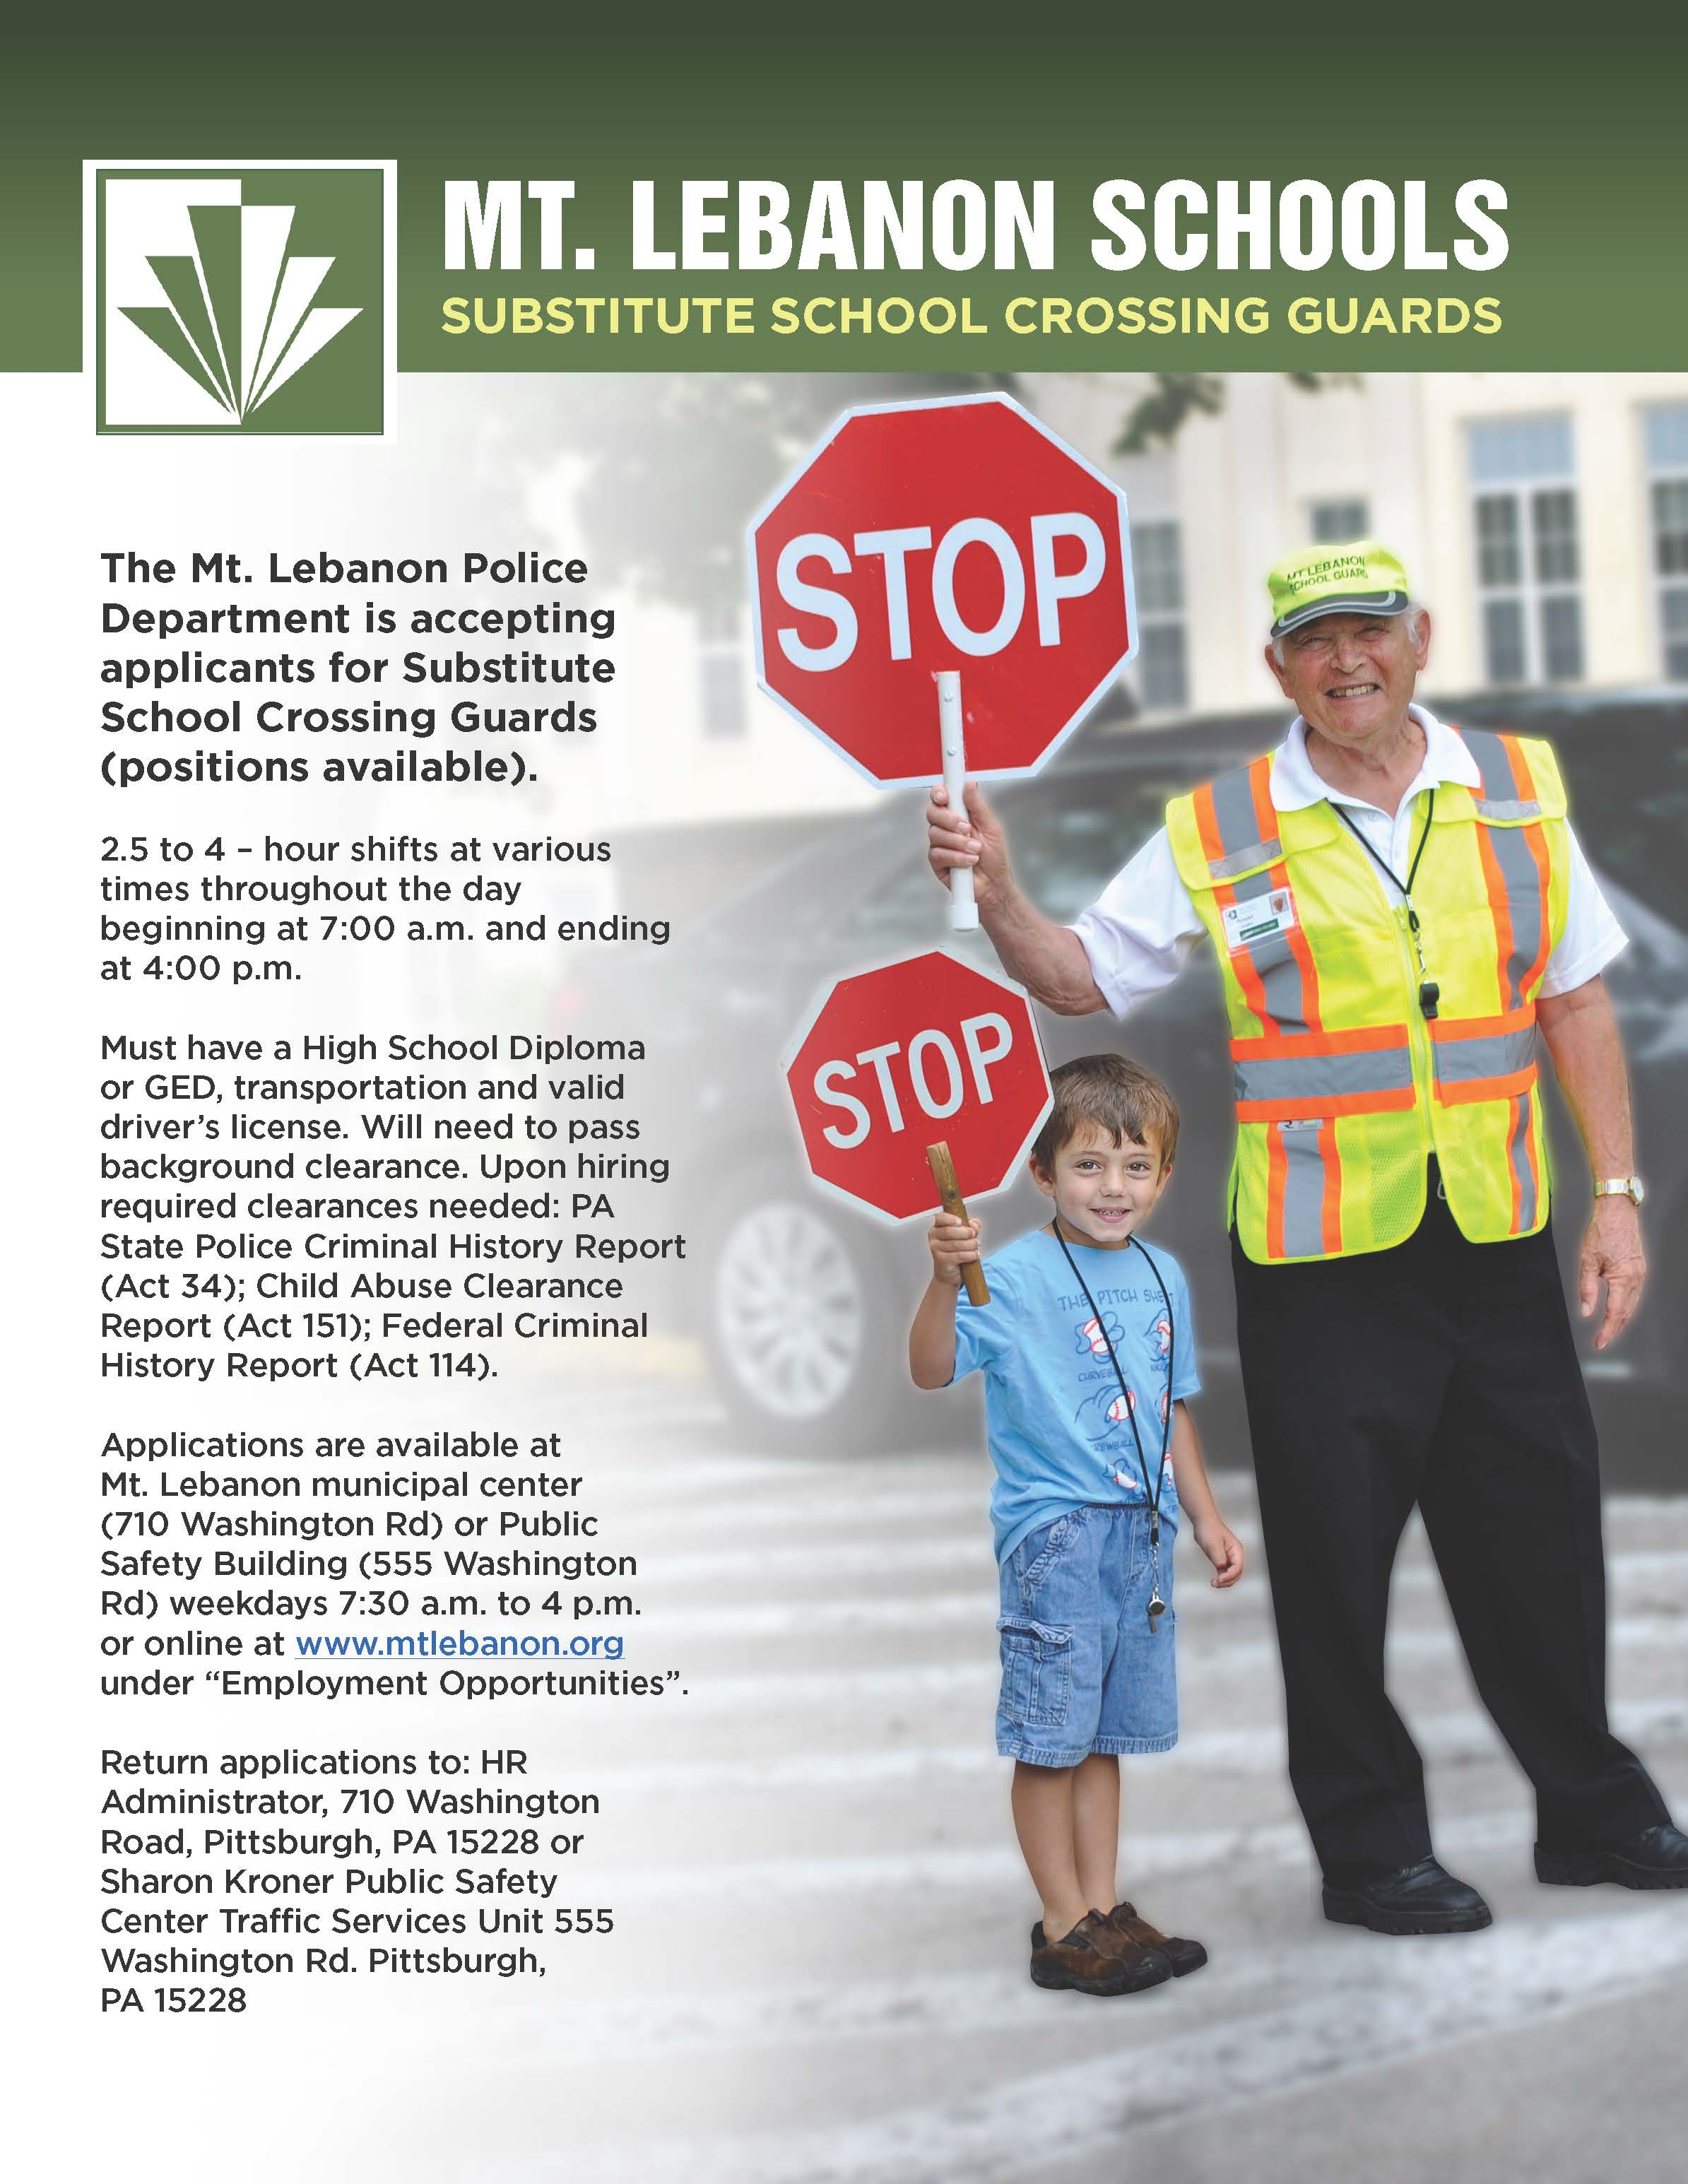 crossing guard poster 2019-2020 school year